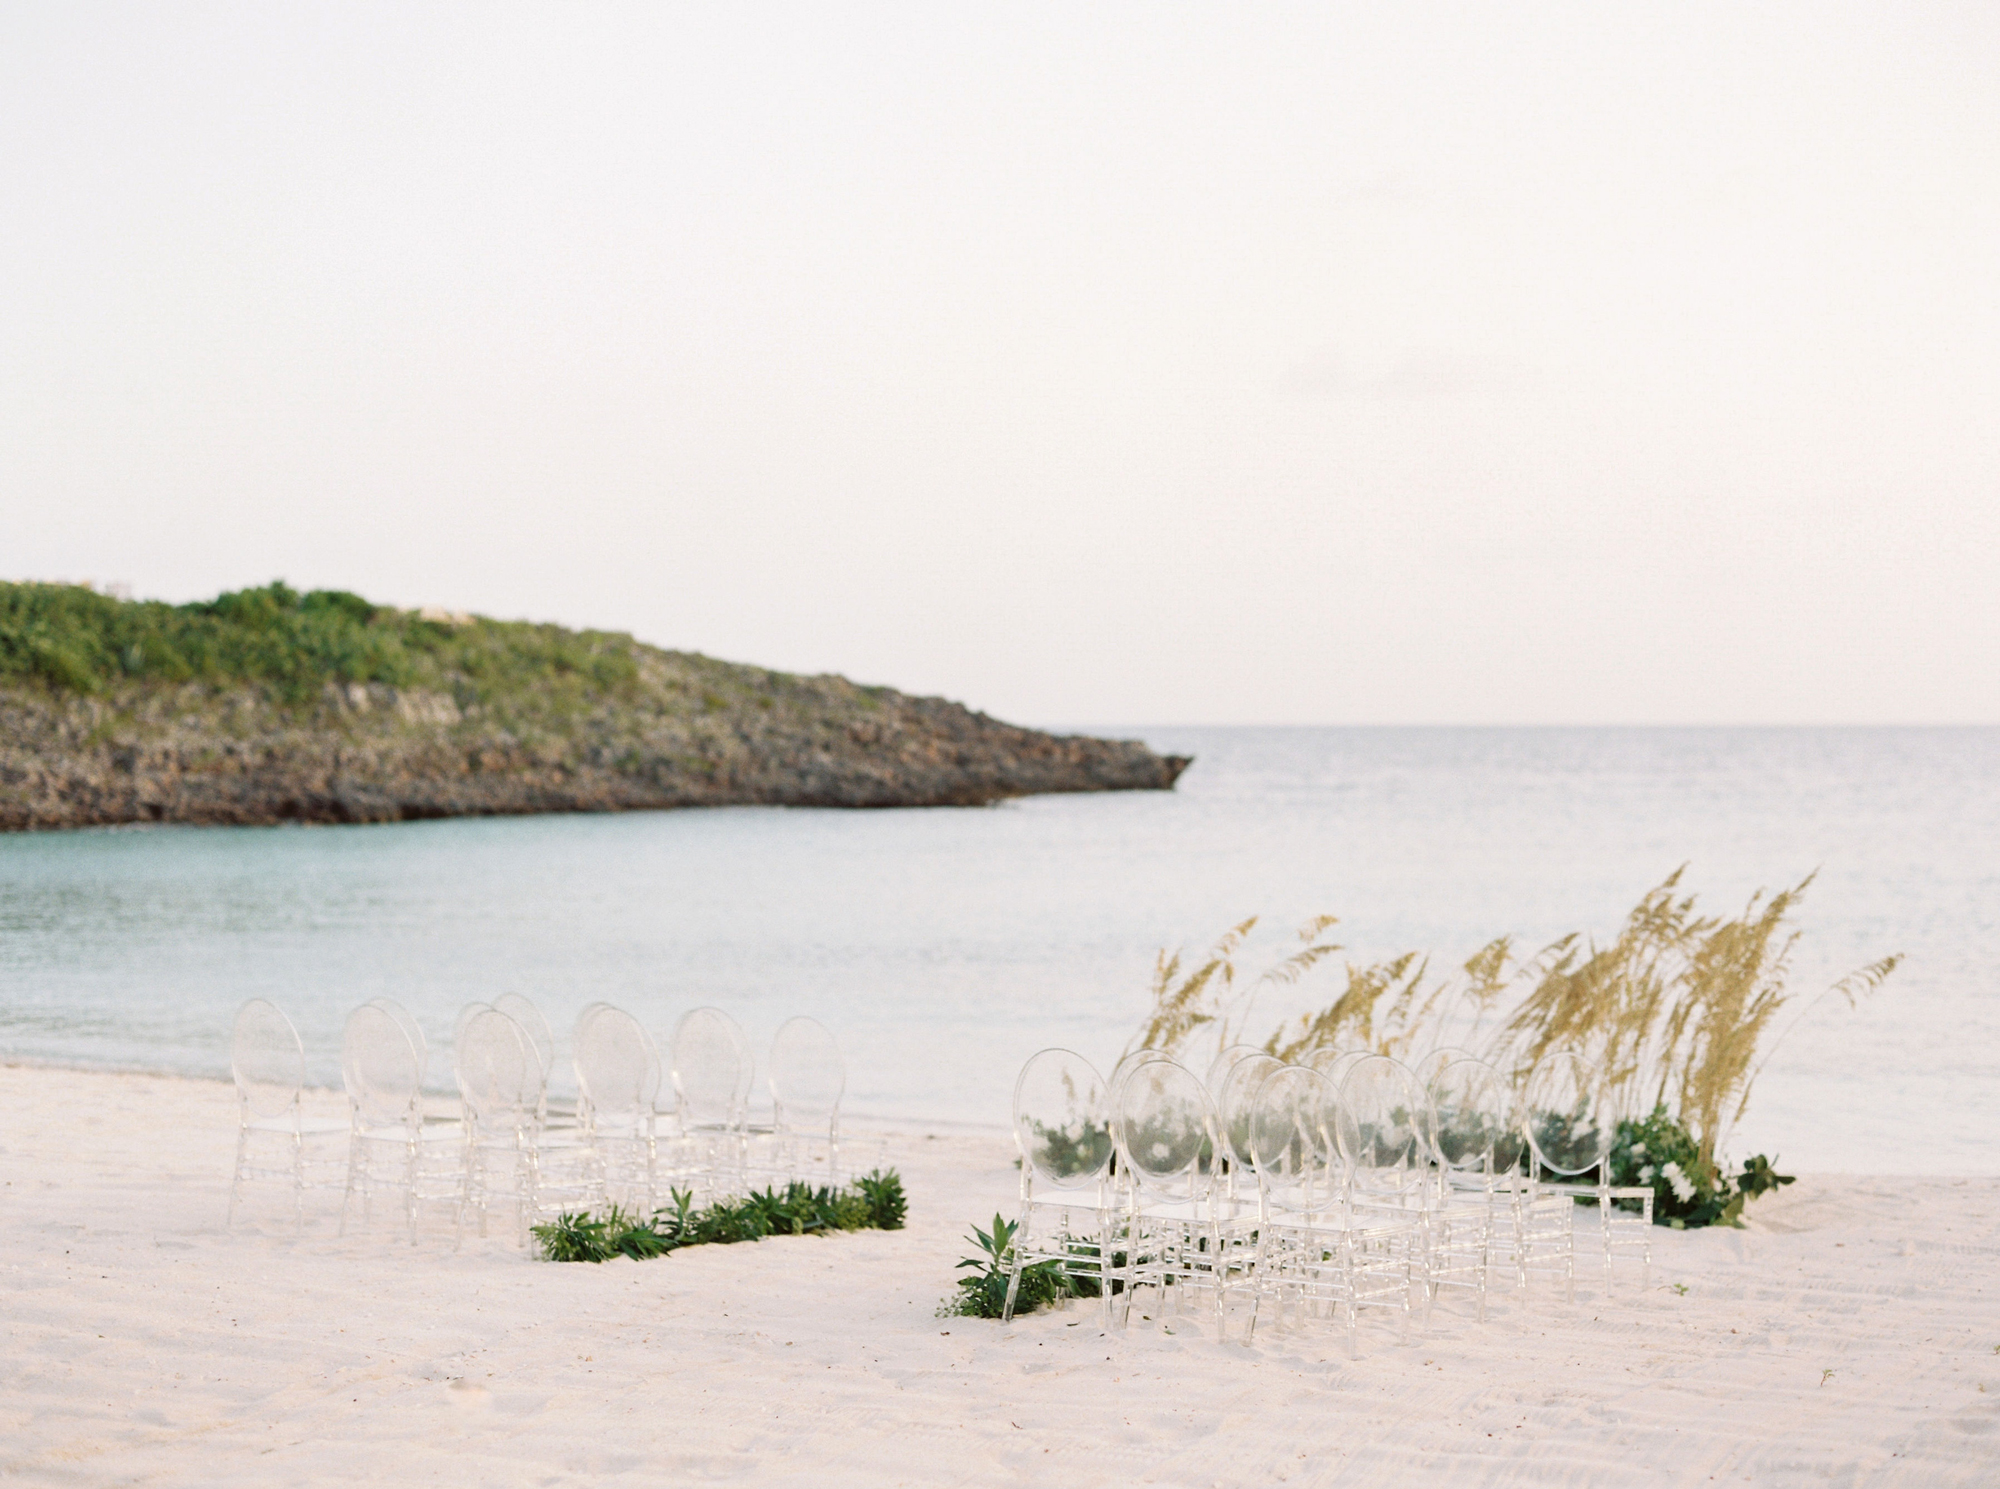 lucite chairs arranged on a beach